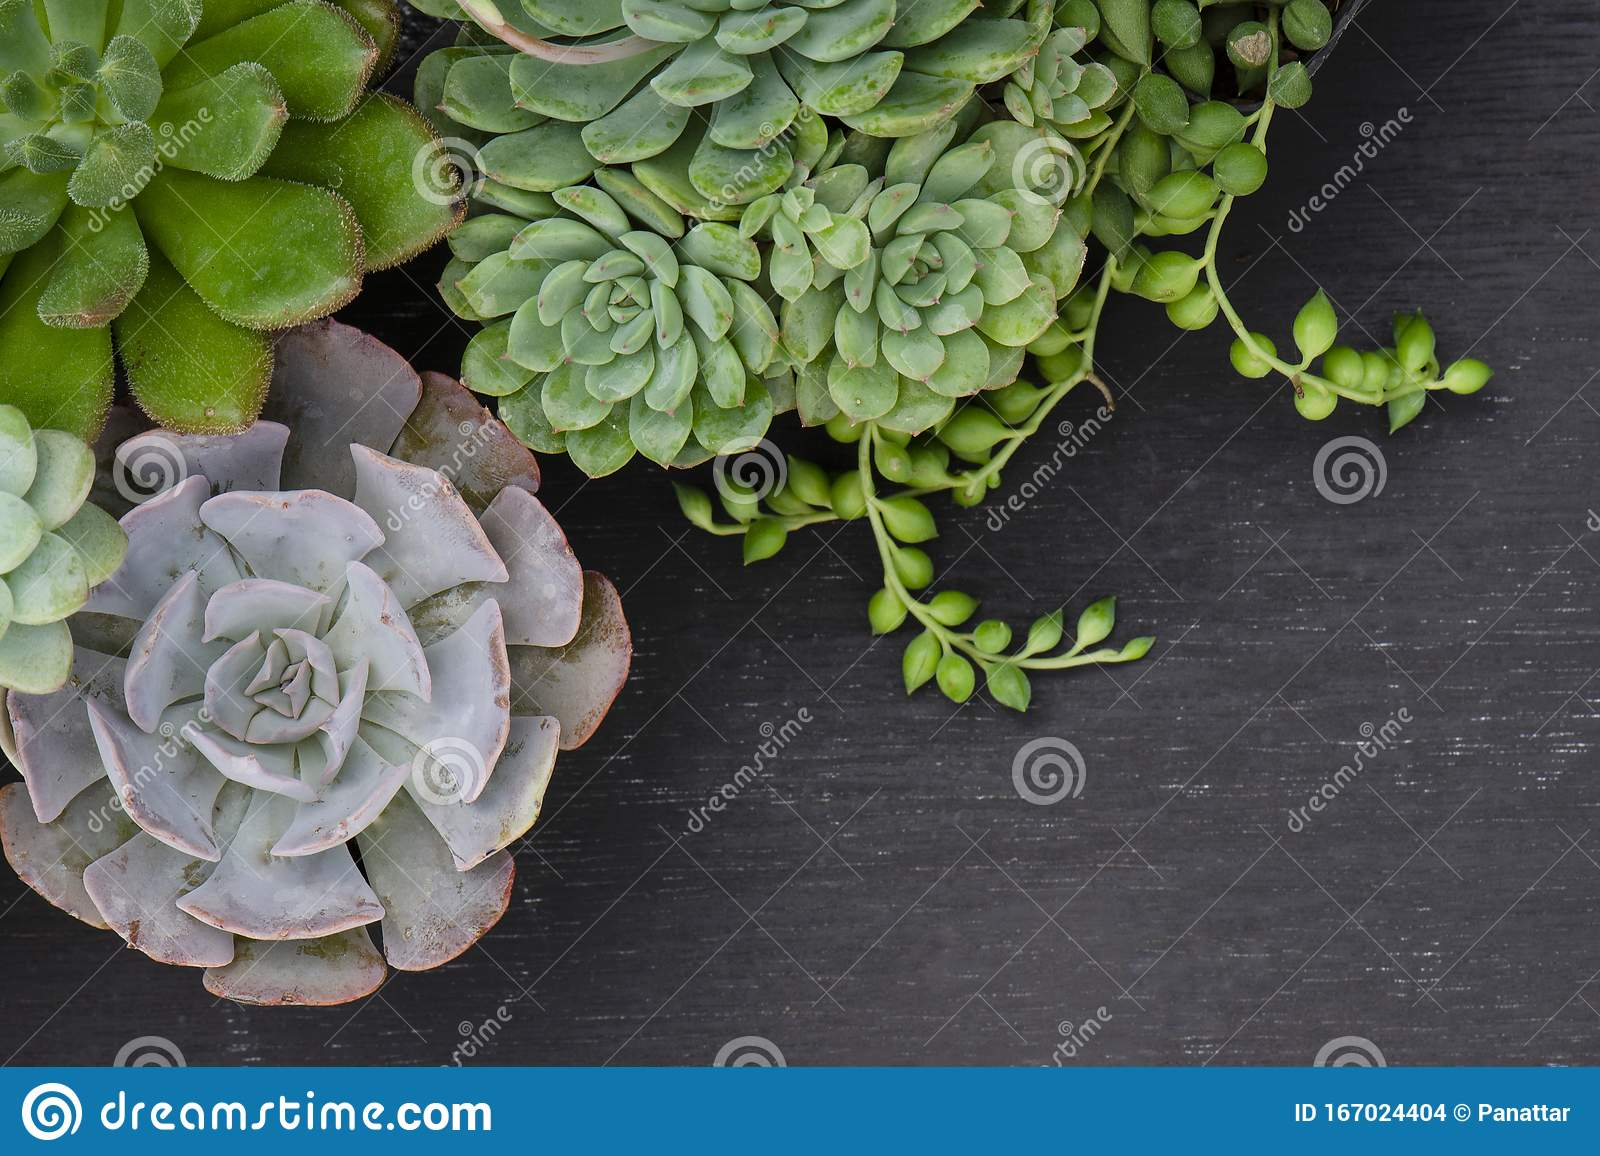 2 809 Succulent Border Photos Free Royalty Free Stock Photos From Dreamstime